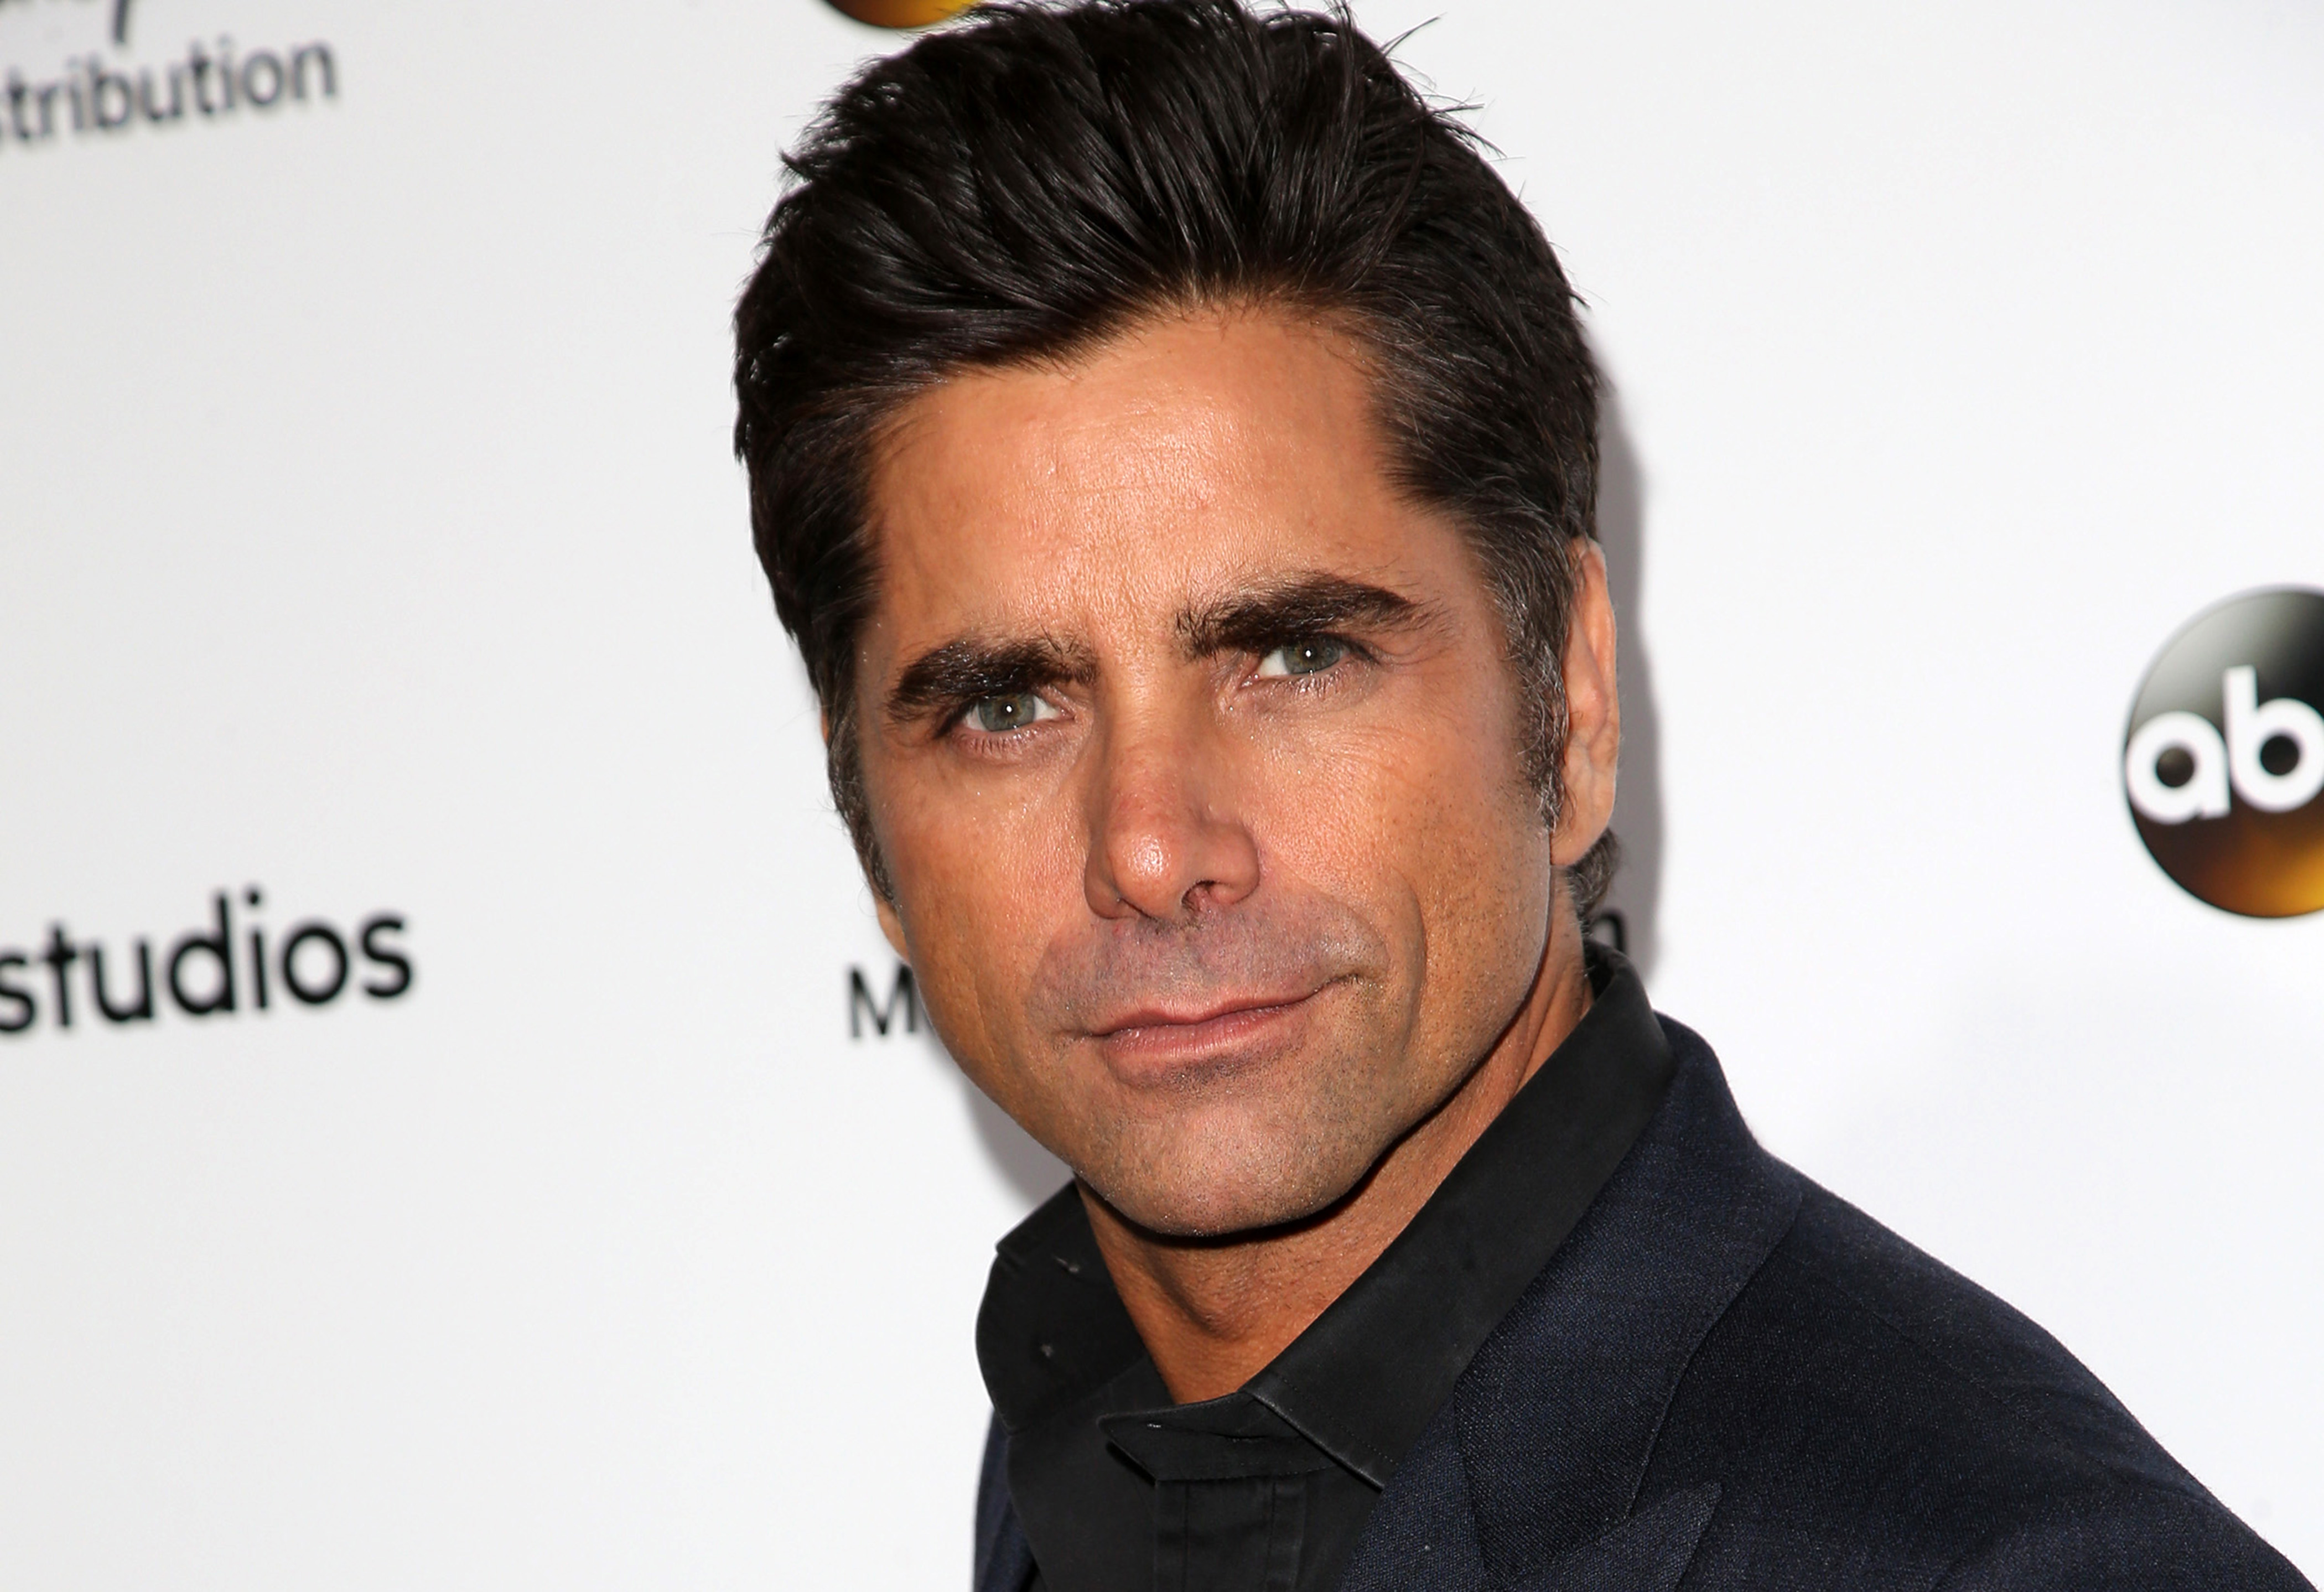 Does John Stamos have a drinking problem?